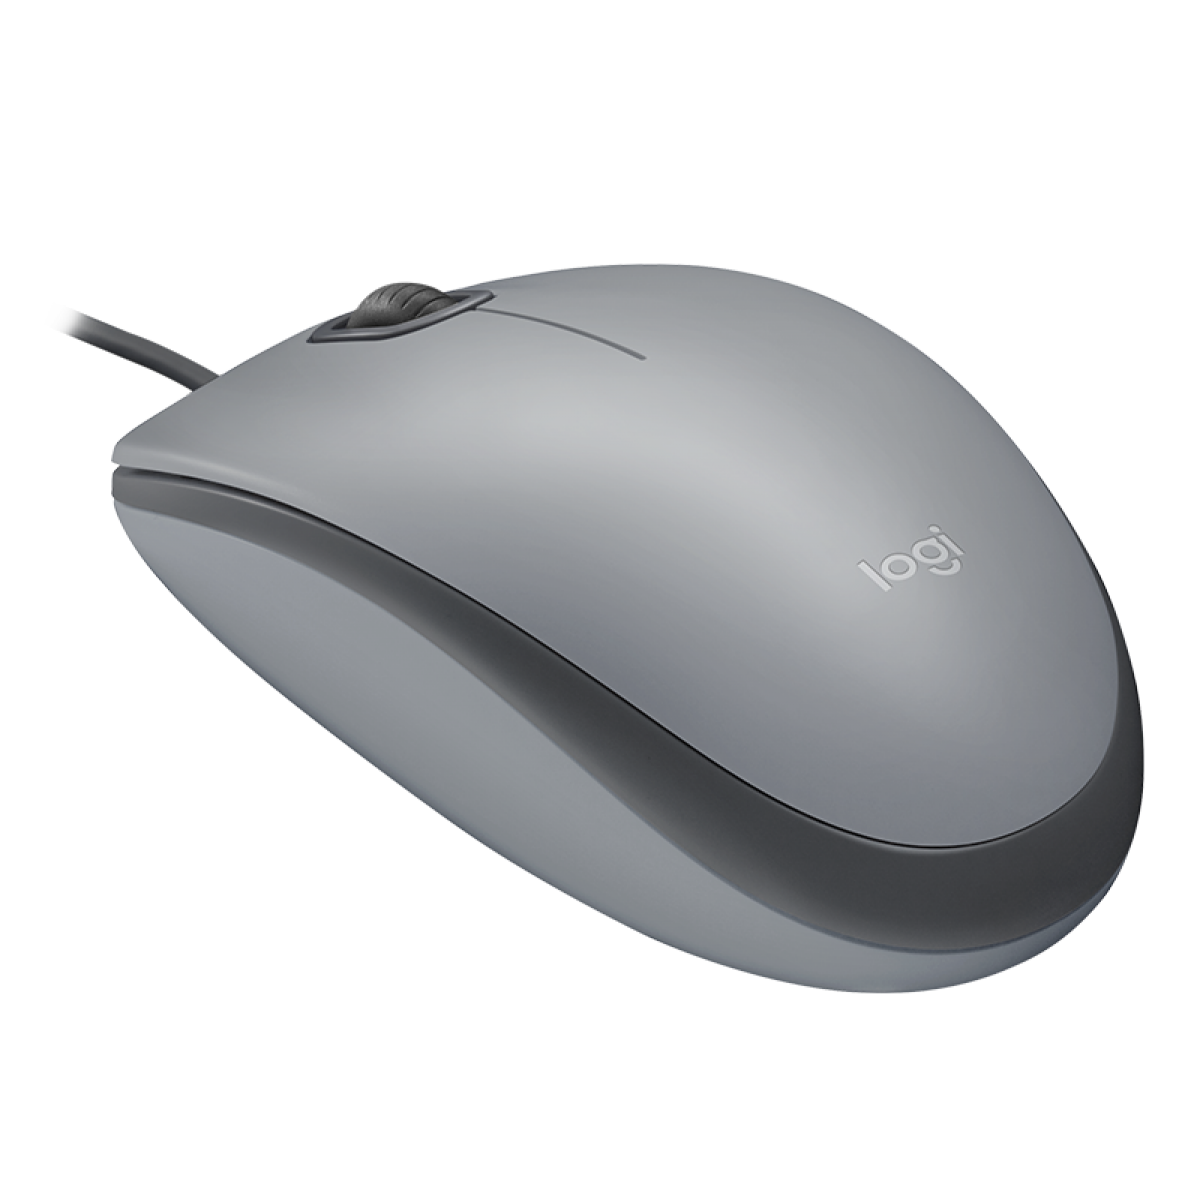 Mouse Logitech M110, USB, Grey, 910-005494